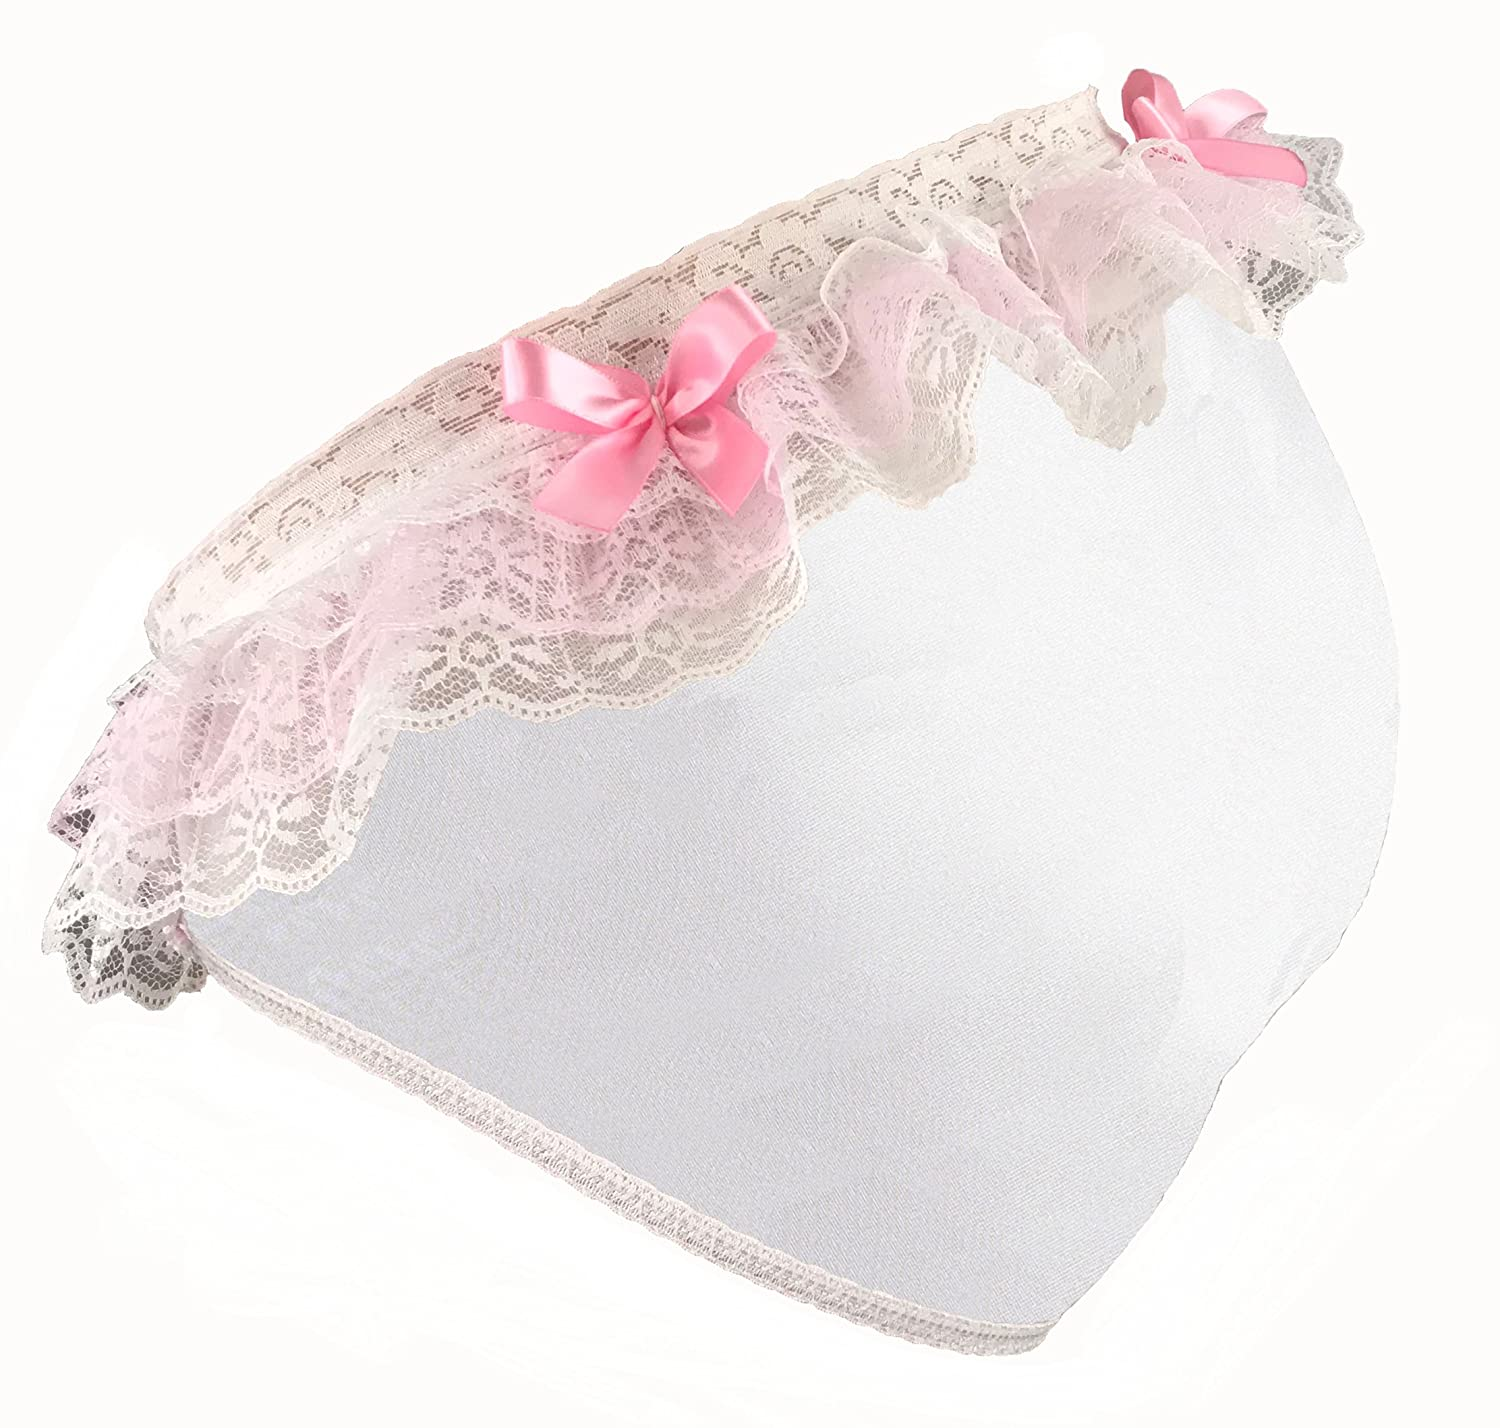 635401154386 Amazon.com: Sissy Dames Unisex Cute Lace Dress up Lingerie Panties - White  with Pink Bow: Clothing